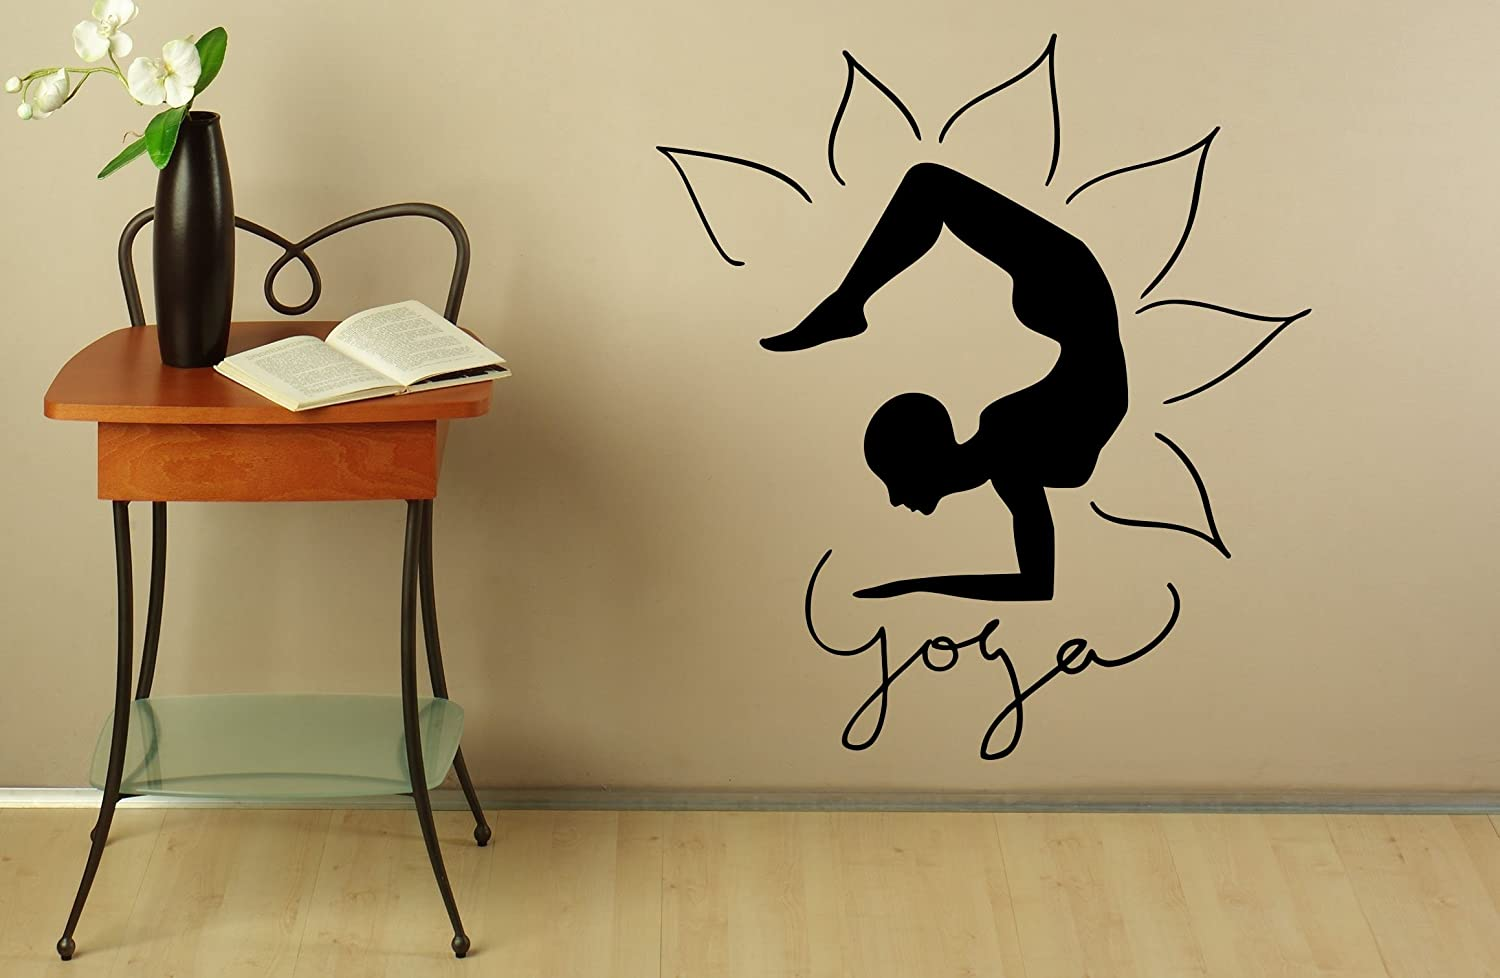 Yoga Wall Decal Wall Vinyl Sticker Fitness Meditation Life ...